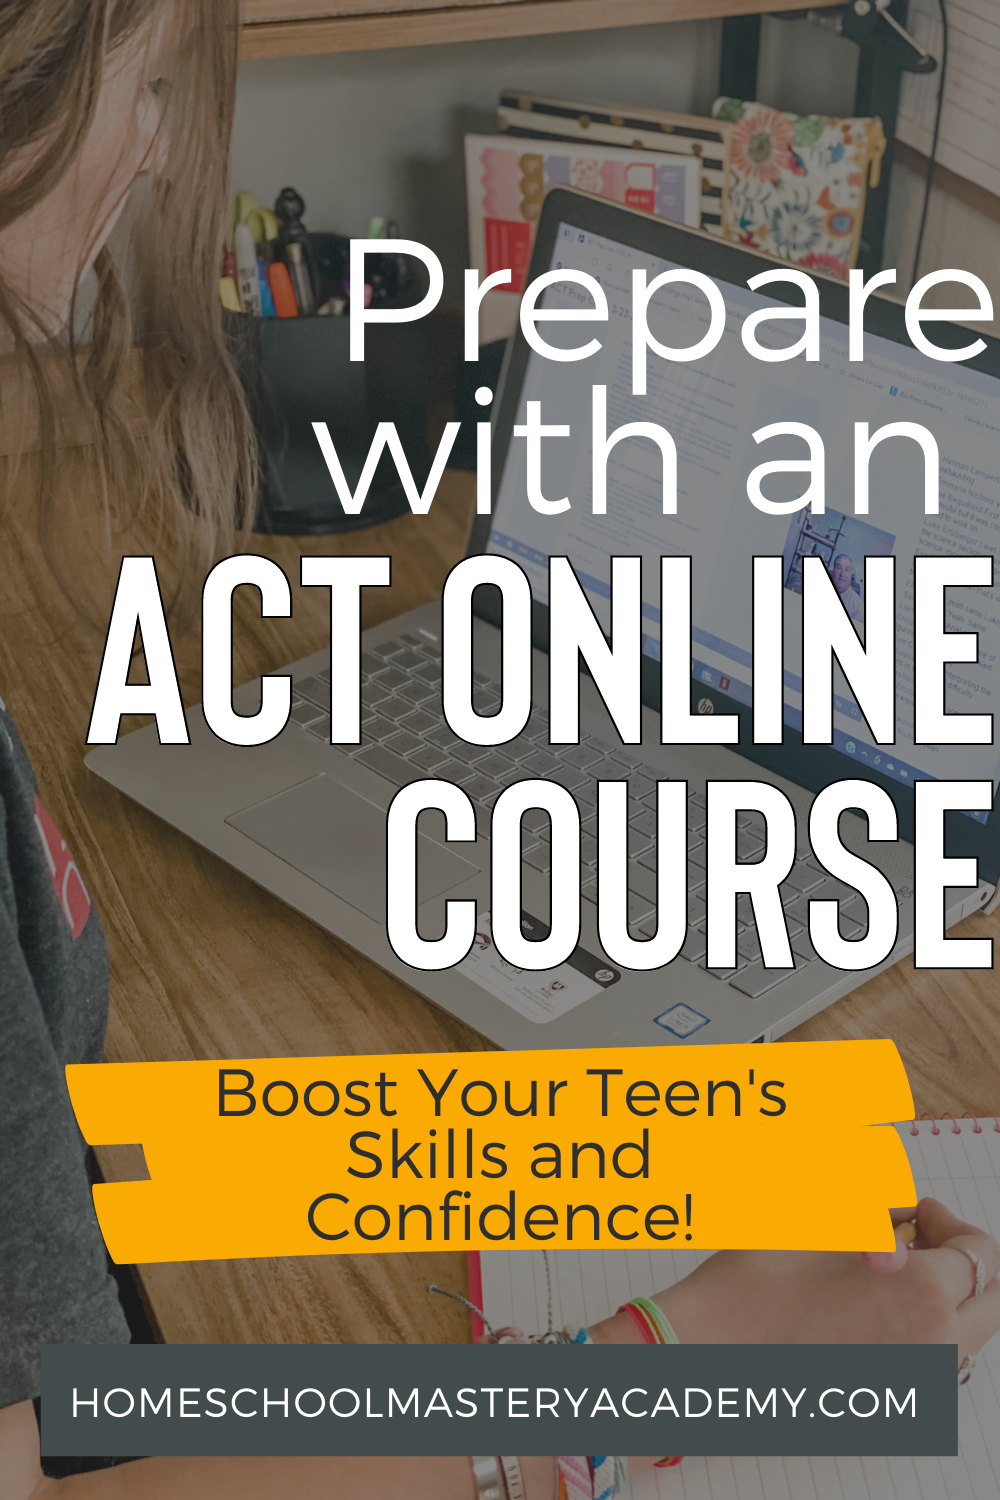 An ACT Online Course is not only perfect for preparing your teen for the actual test, but they will learn so much more along the way! #ACT #testprep #homeschool #highschool #homeschoolcurriculum